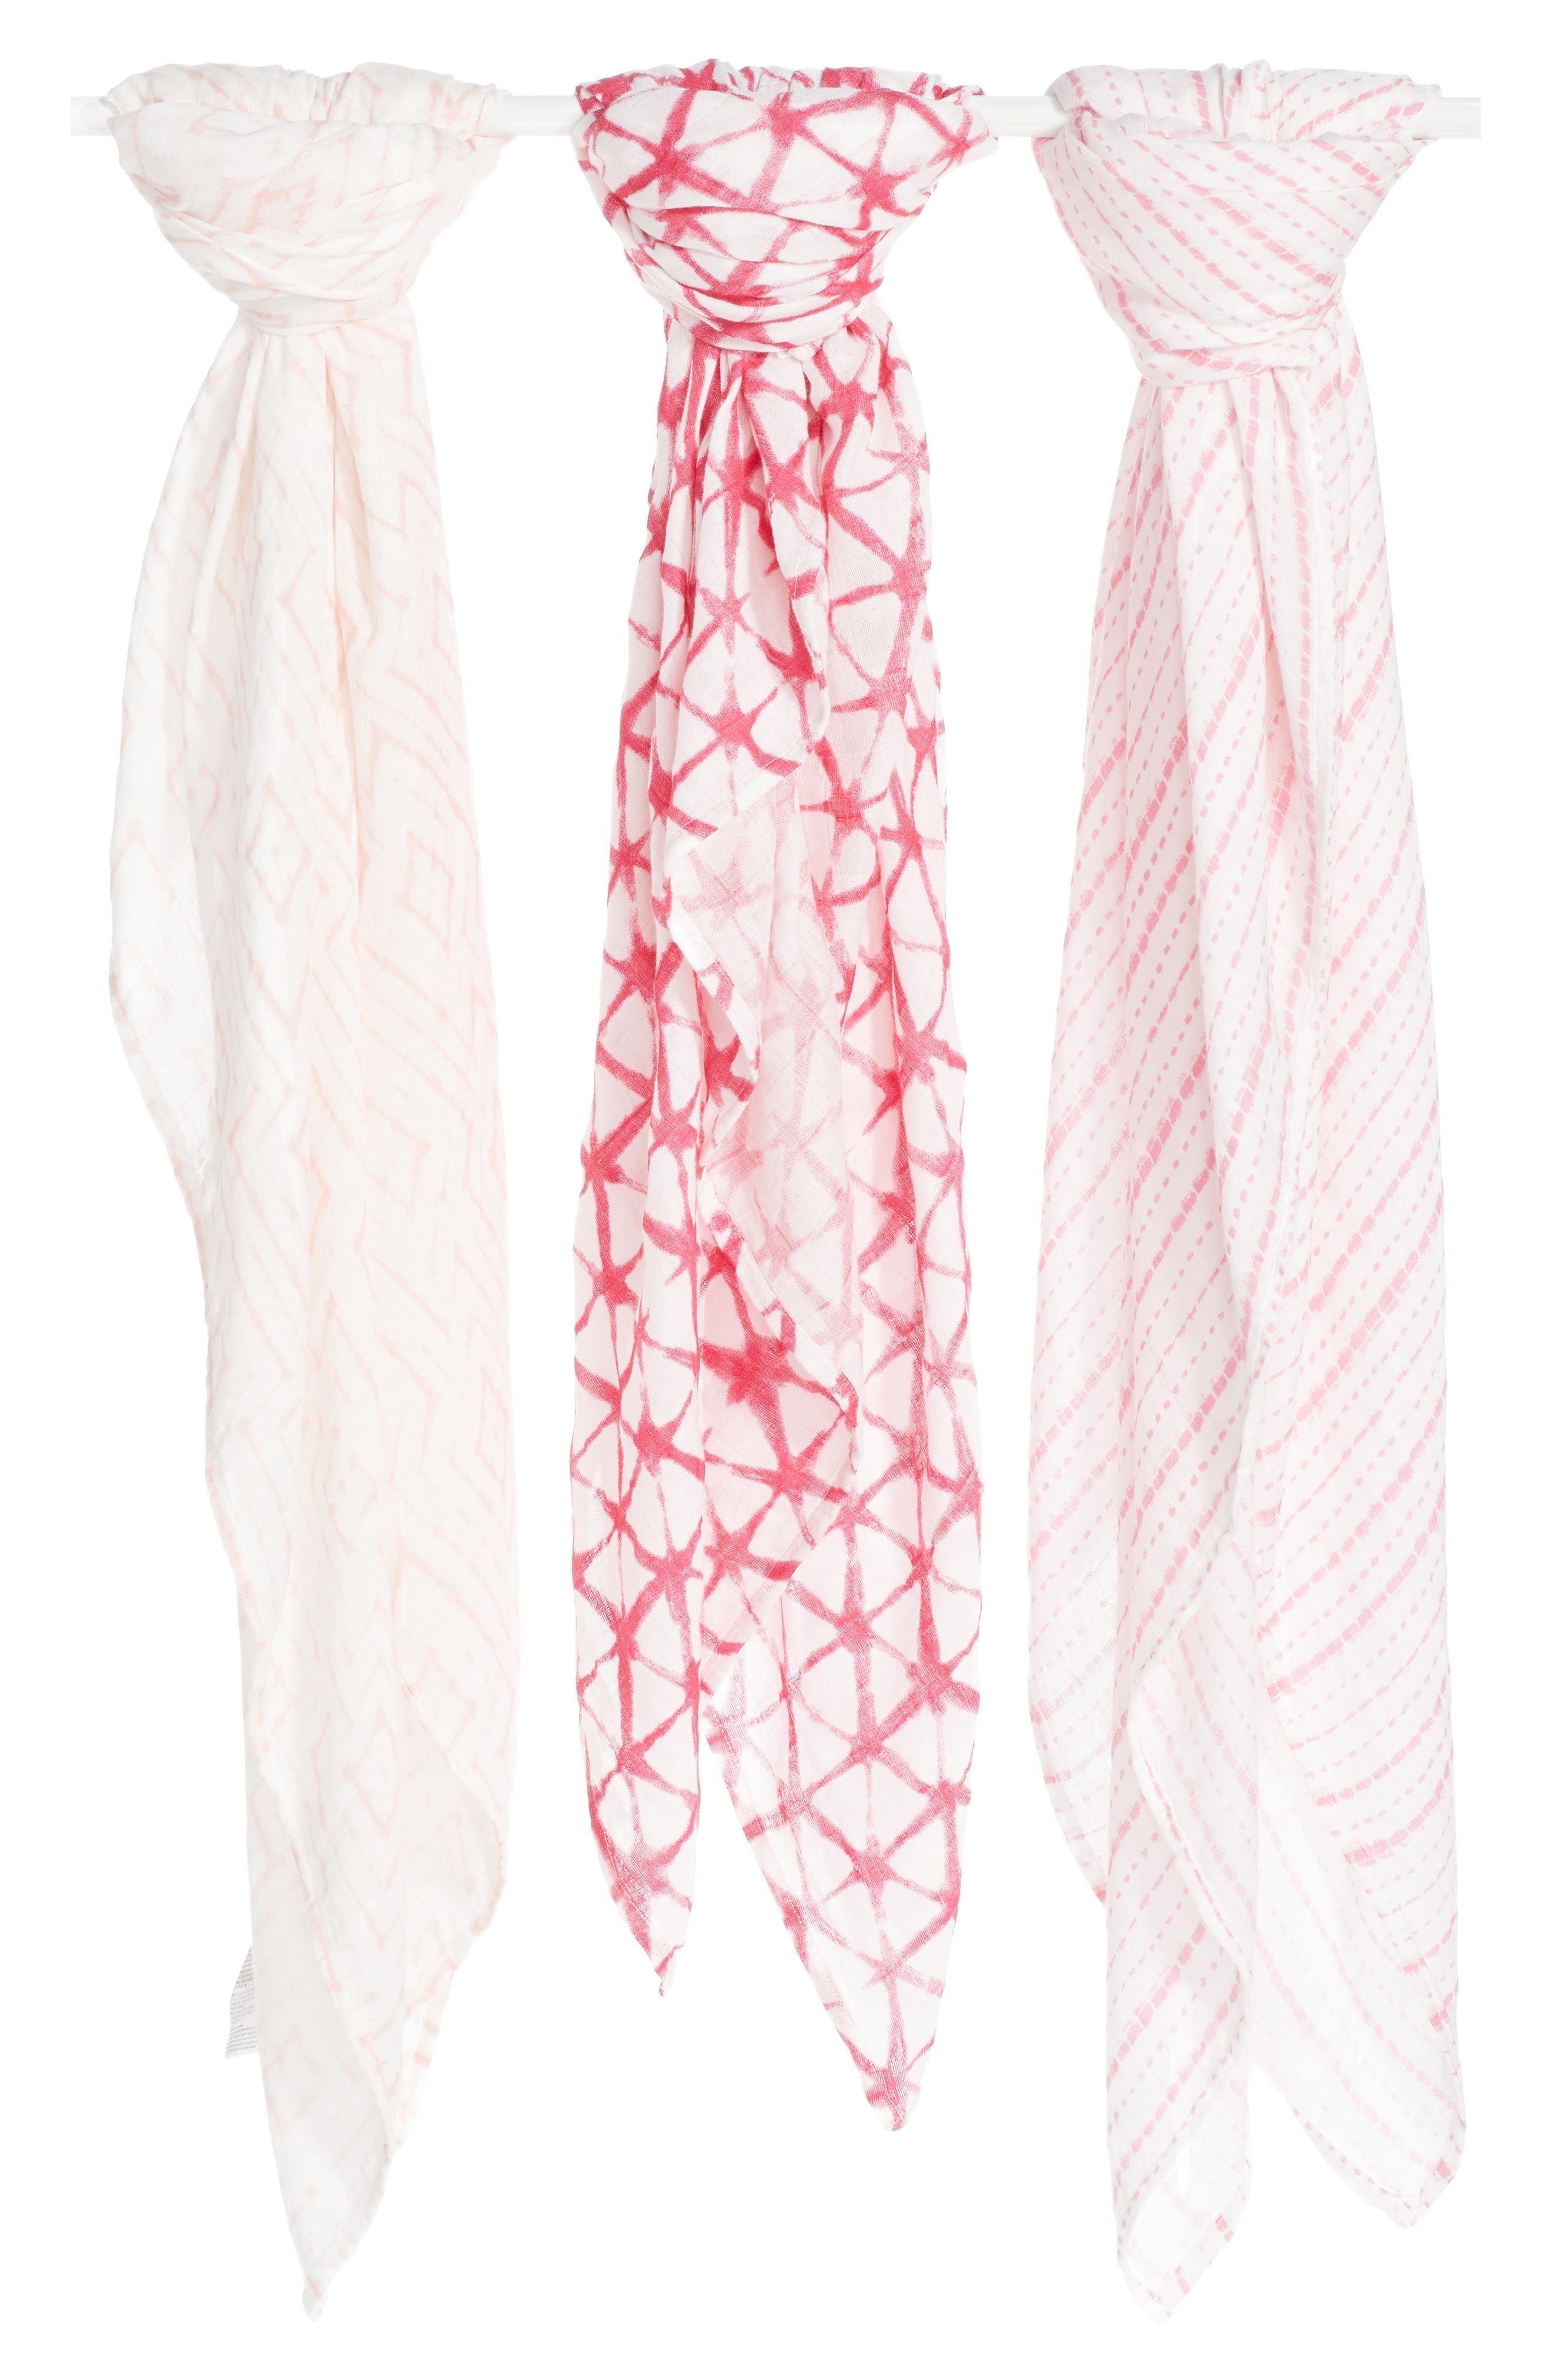 aden + anais 3-Pack Silky Soft Swaddling Cloths